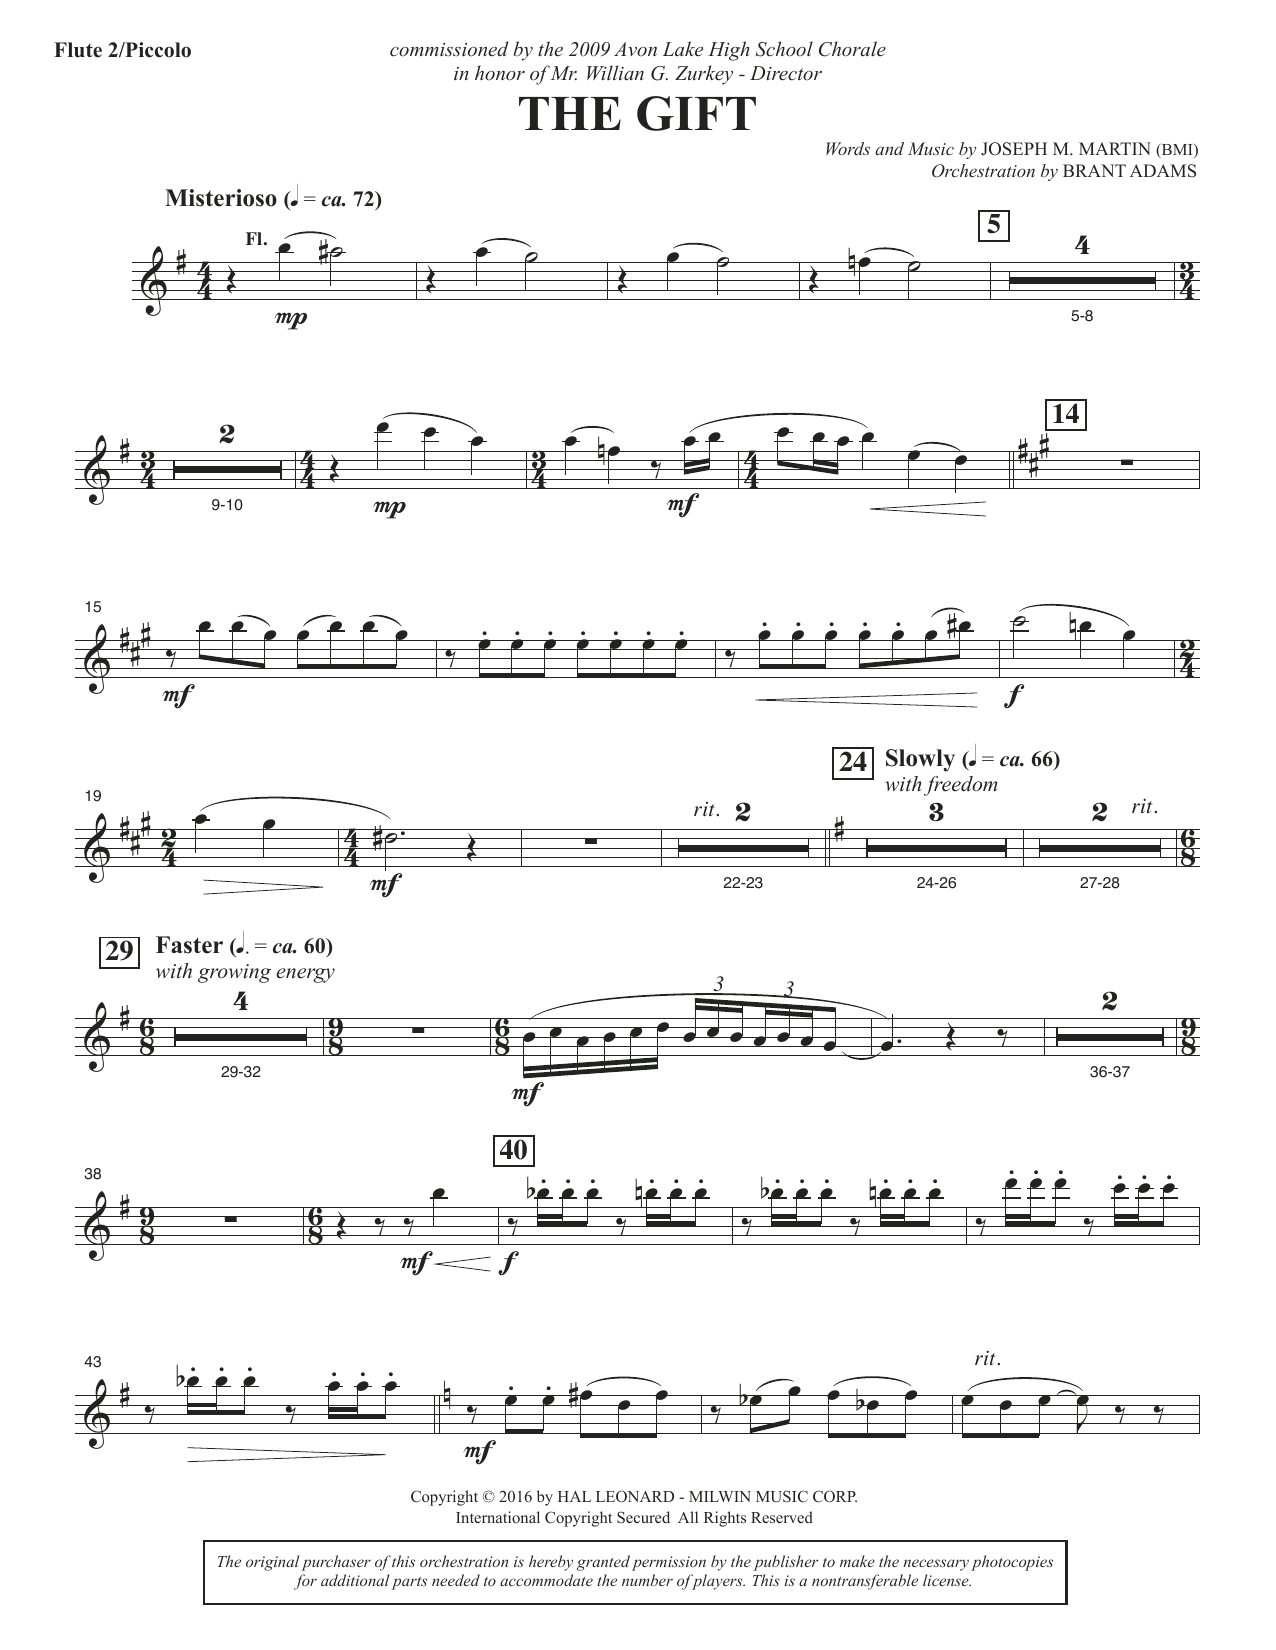 The Gift - Flute 2 (Piccolo) Sheet Music